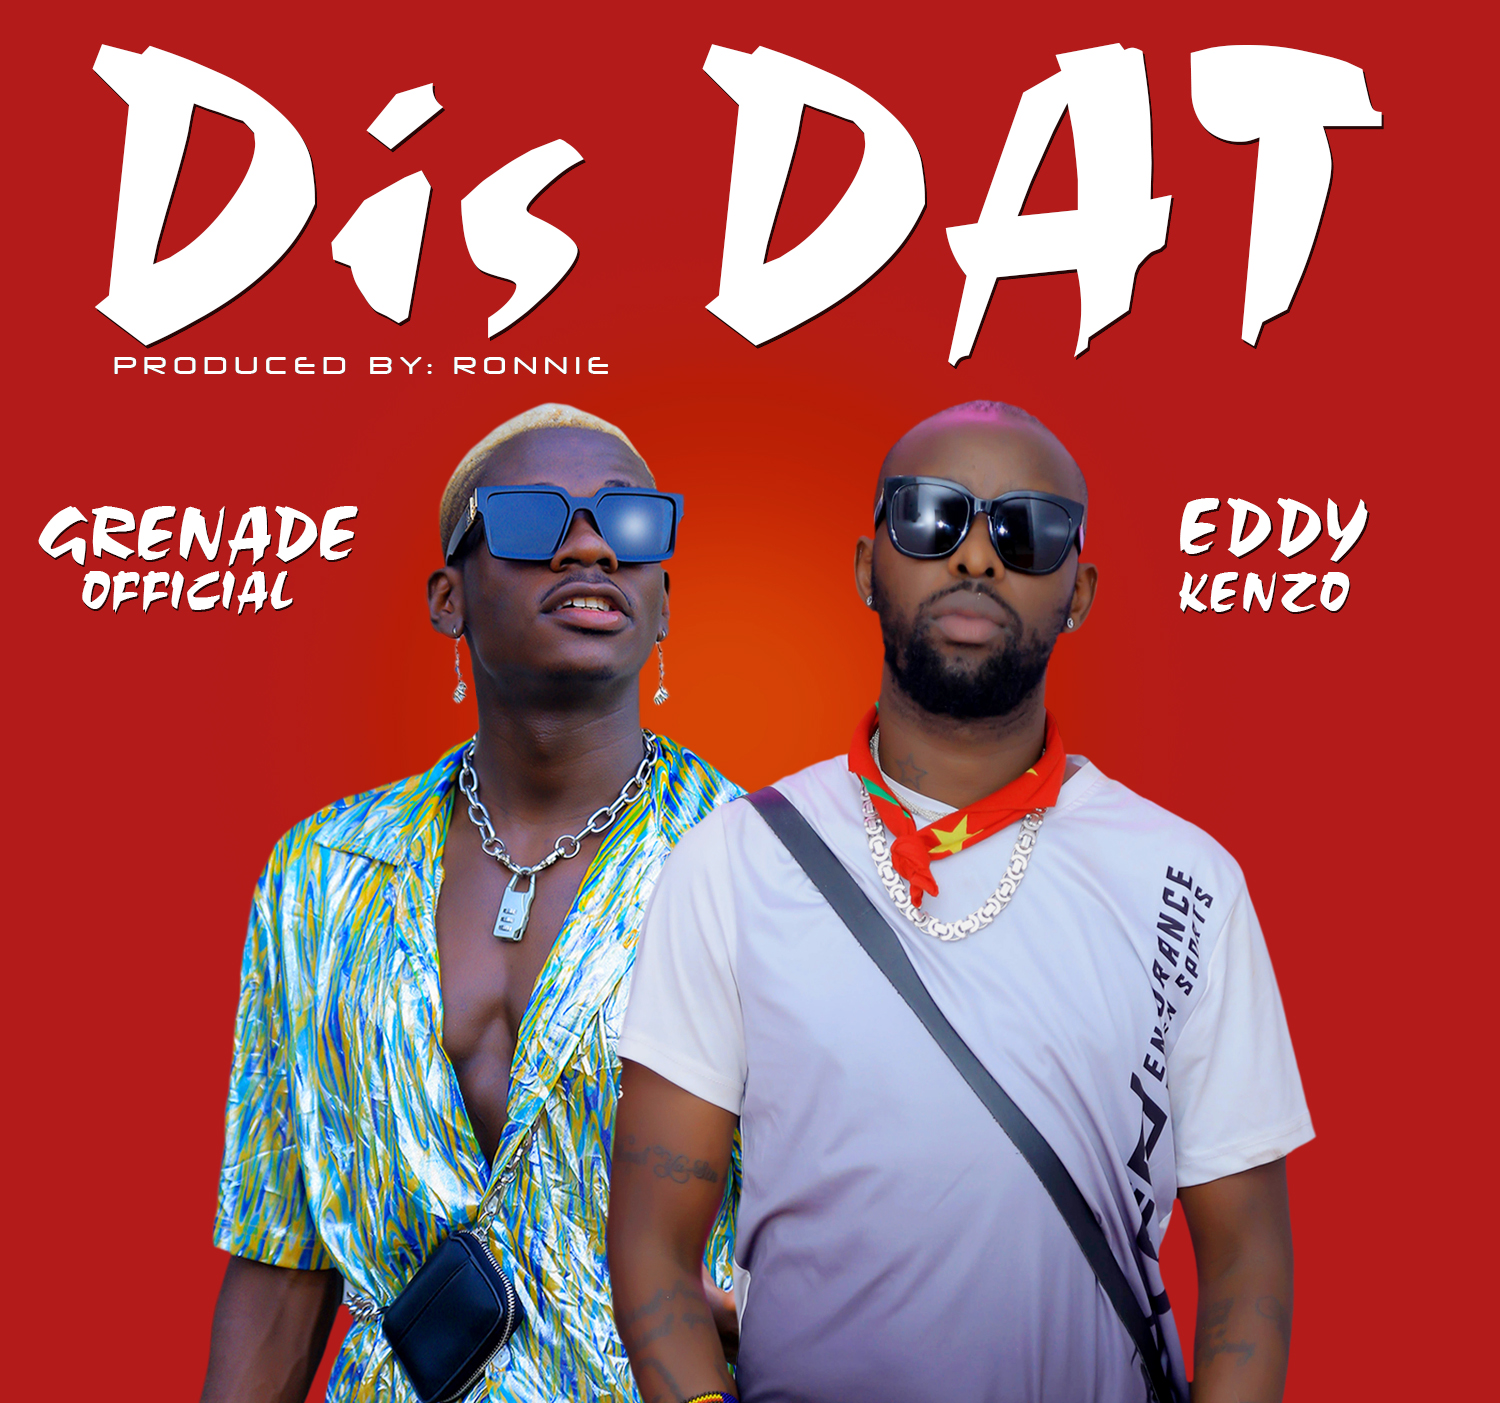 Dis Dat by Eddy Kenzo and Grenade